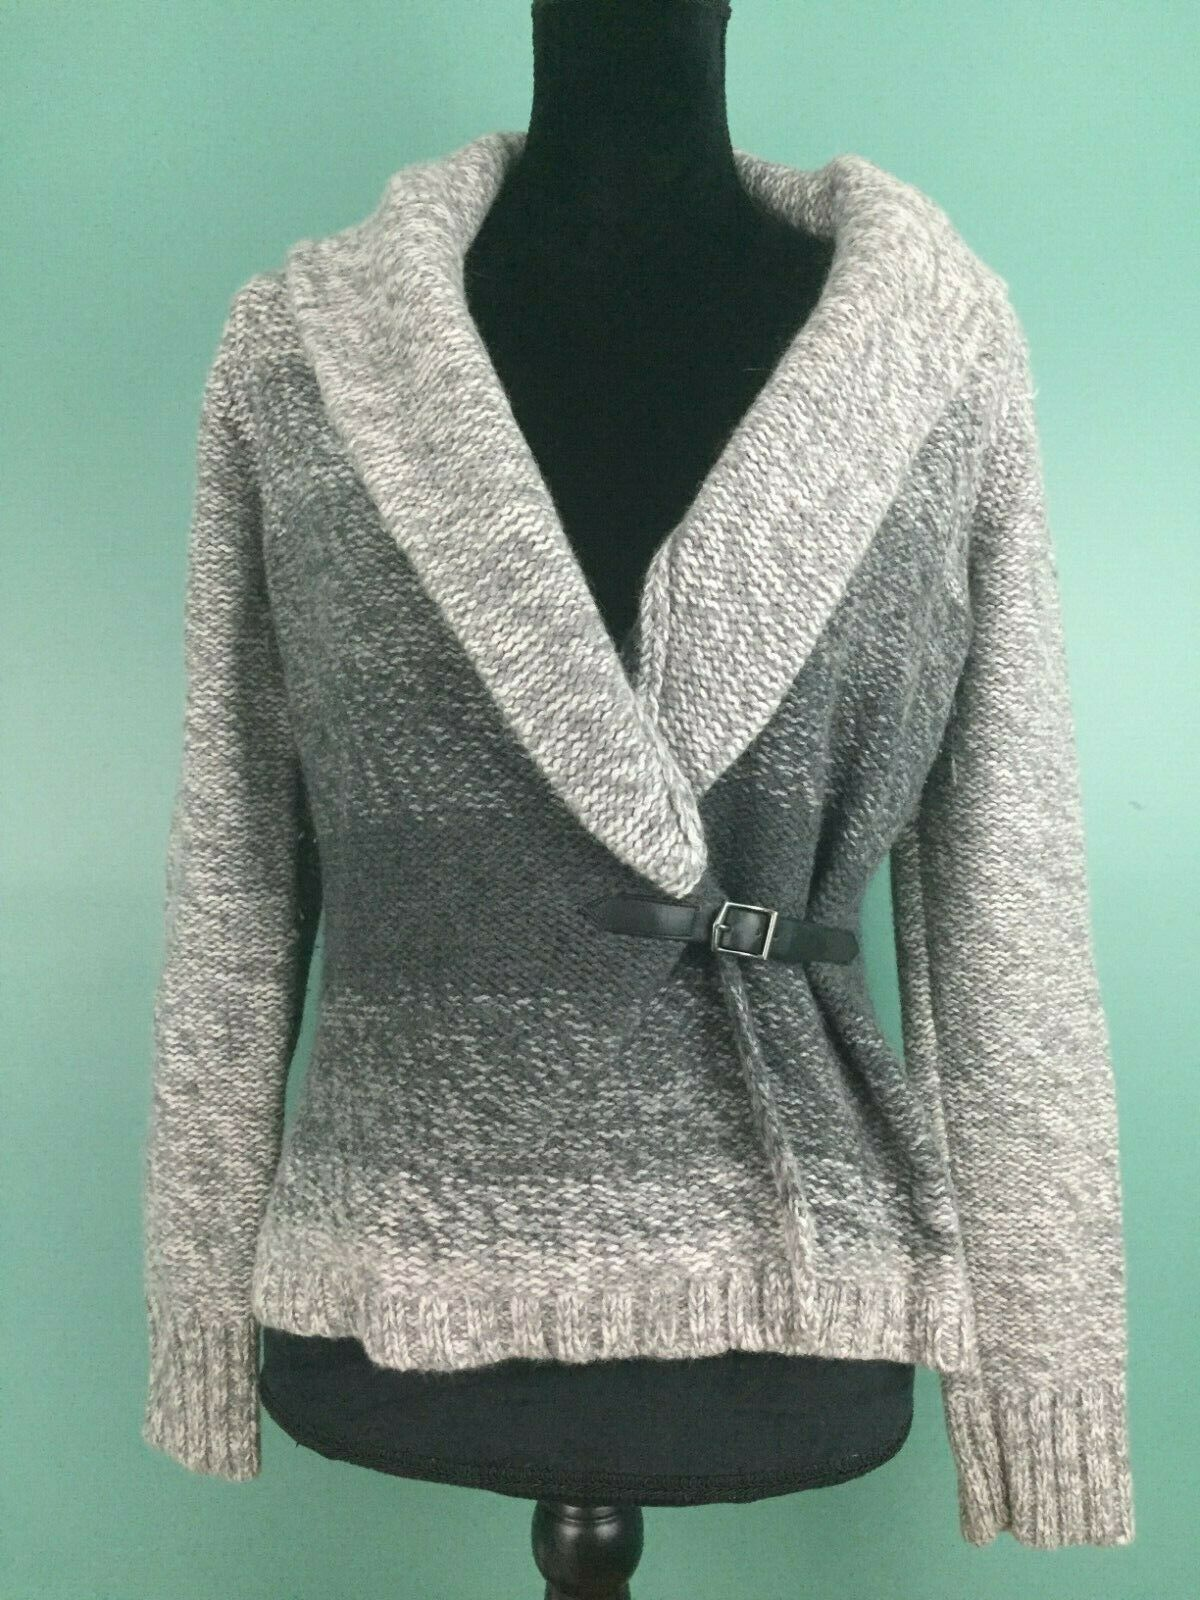 a5694238dbf 57. 57. Previous. Ann Taylor Loft Women s Buckle Waist Cardigan Sweater - Size  Small - Gray